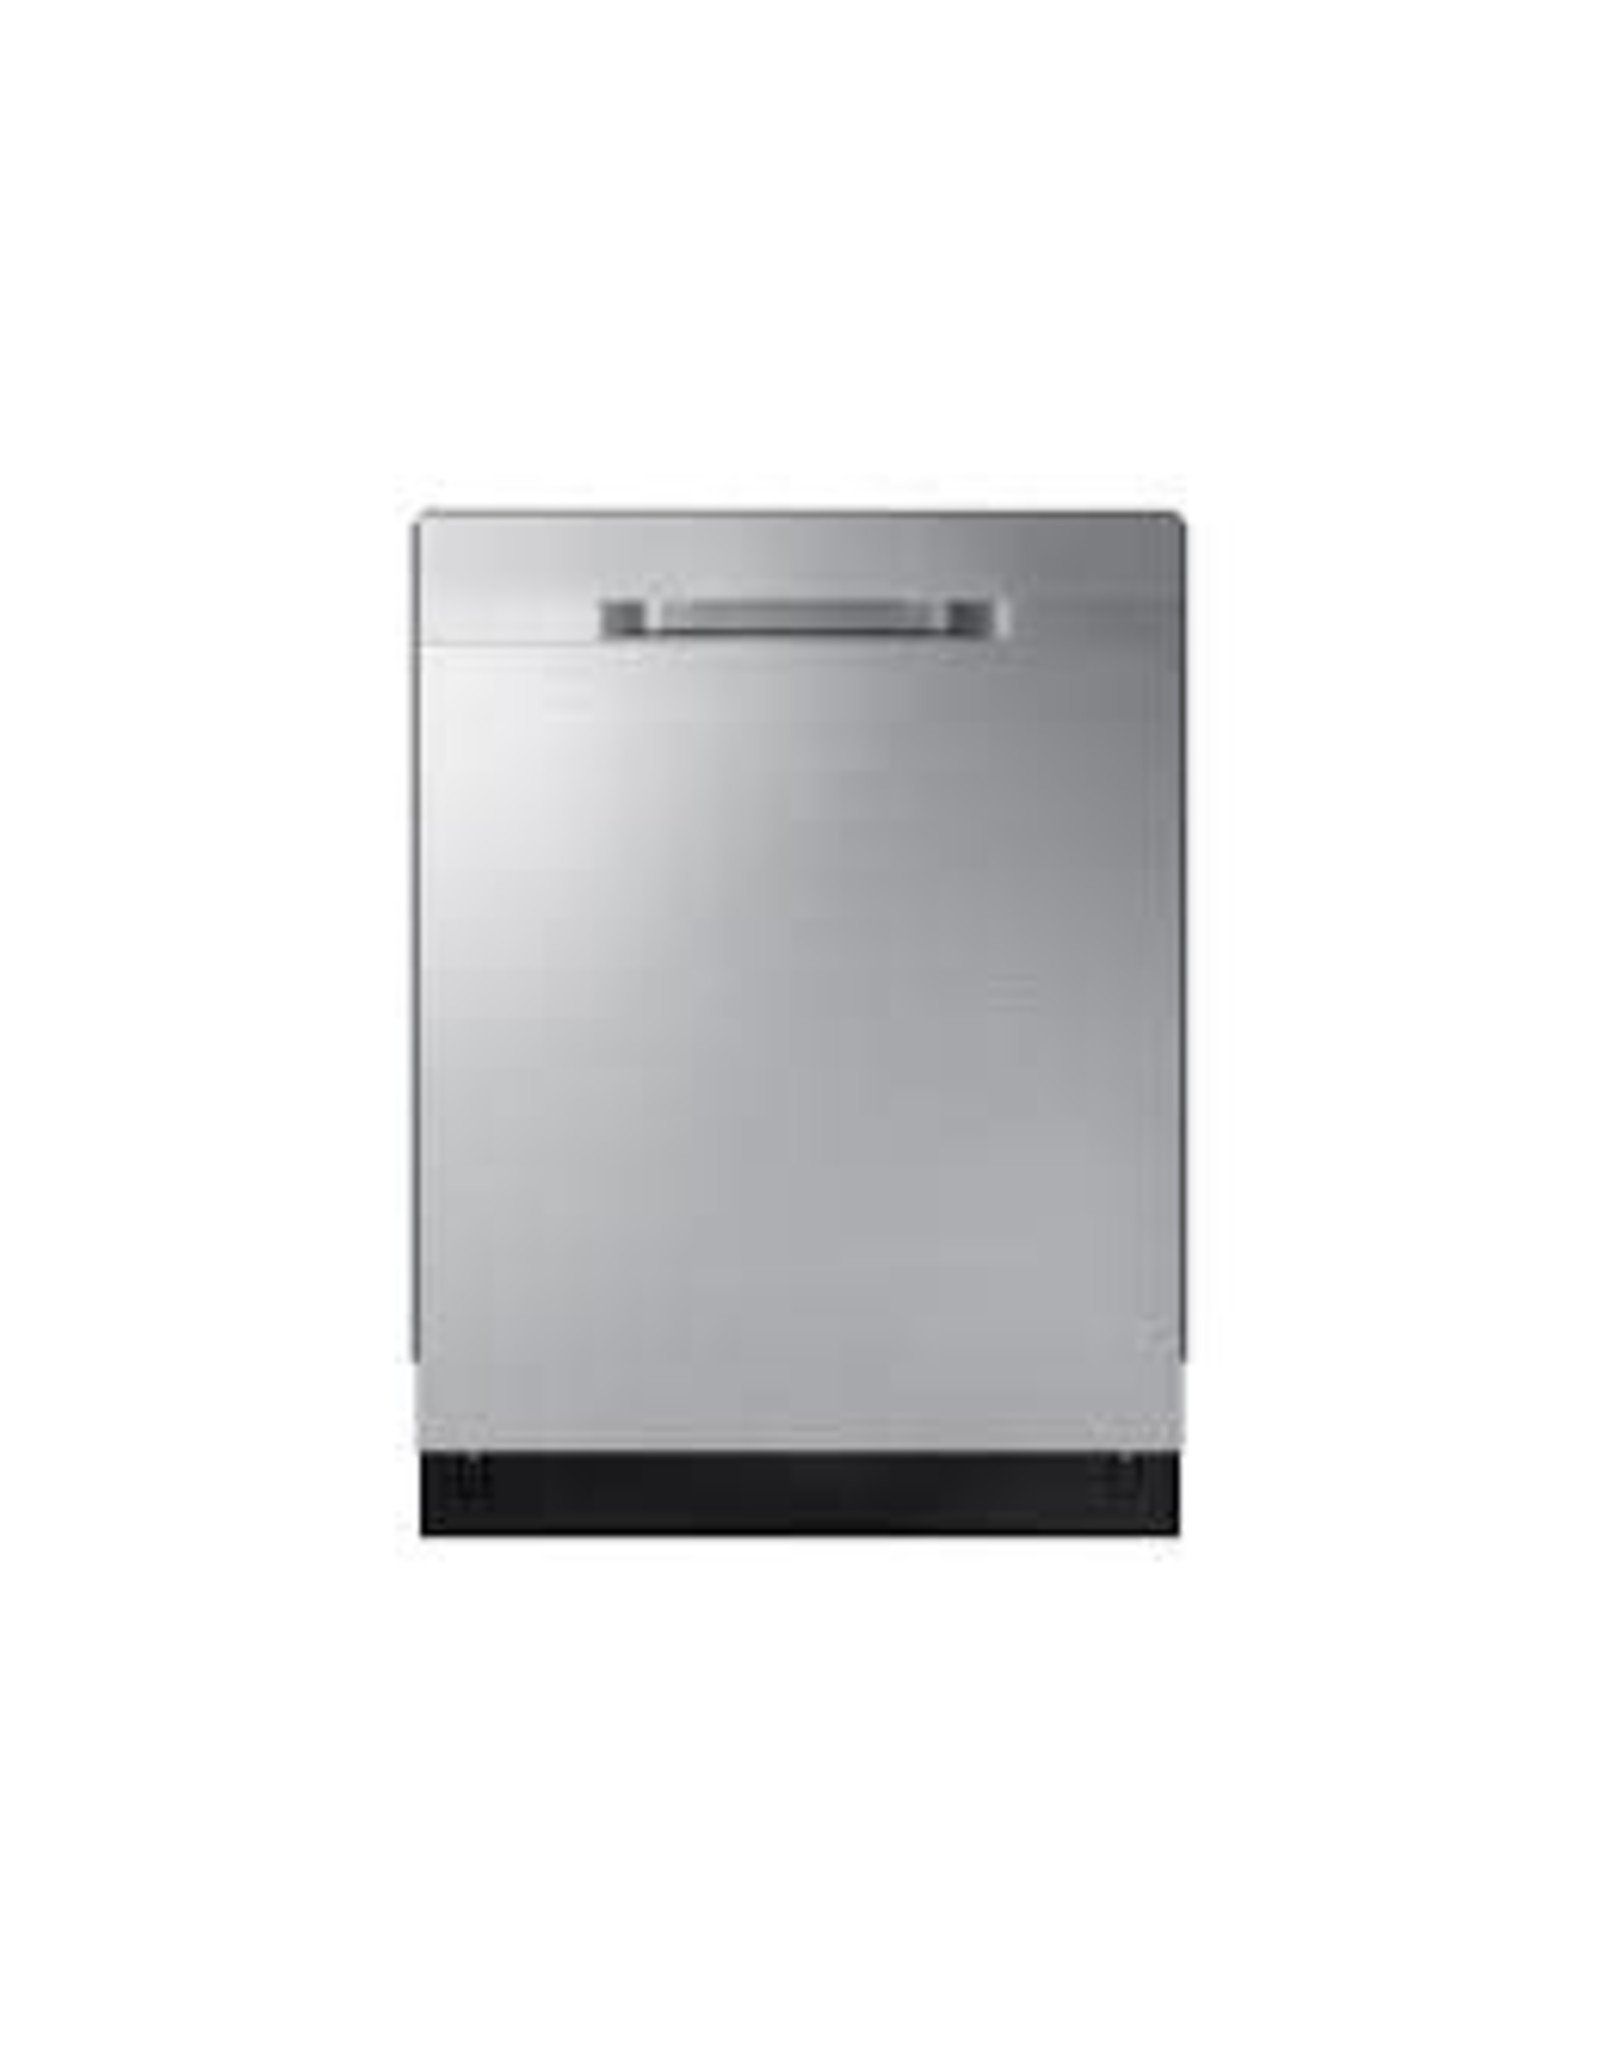 SAMSUNG Copy of DW80R5060US Samsung 24 in Top Control StormWash Tall Tub Dishwasher in Fingerprint Resistant Stainless Steel with AutoRelease Dry, 48 dBA